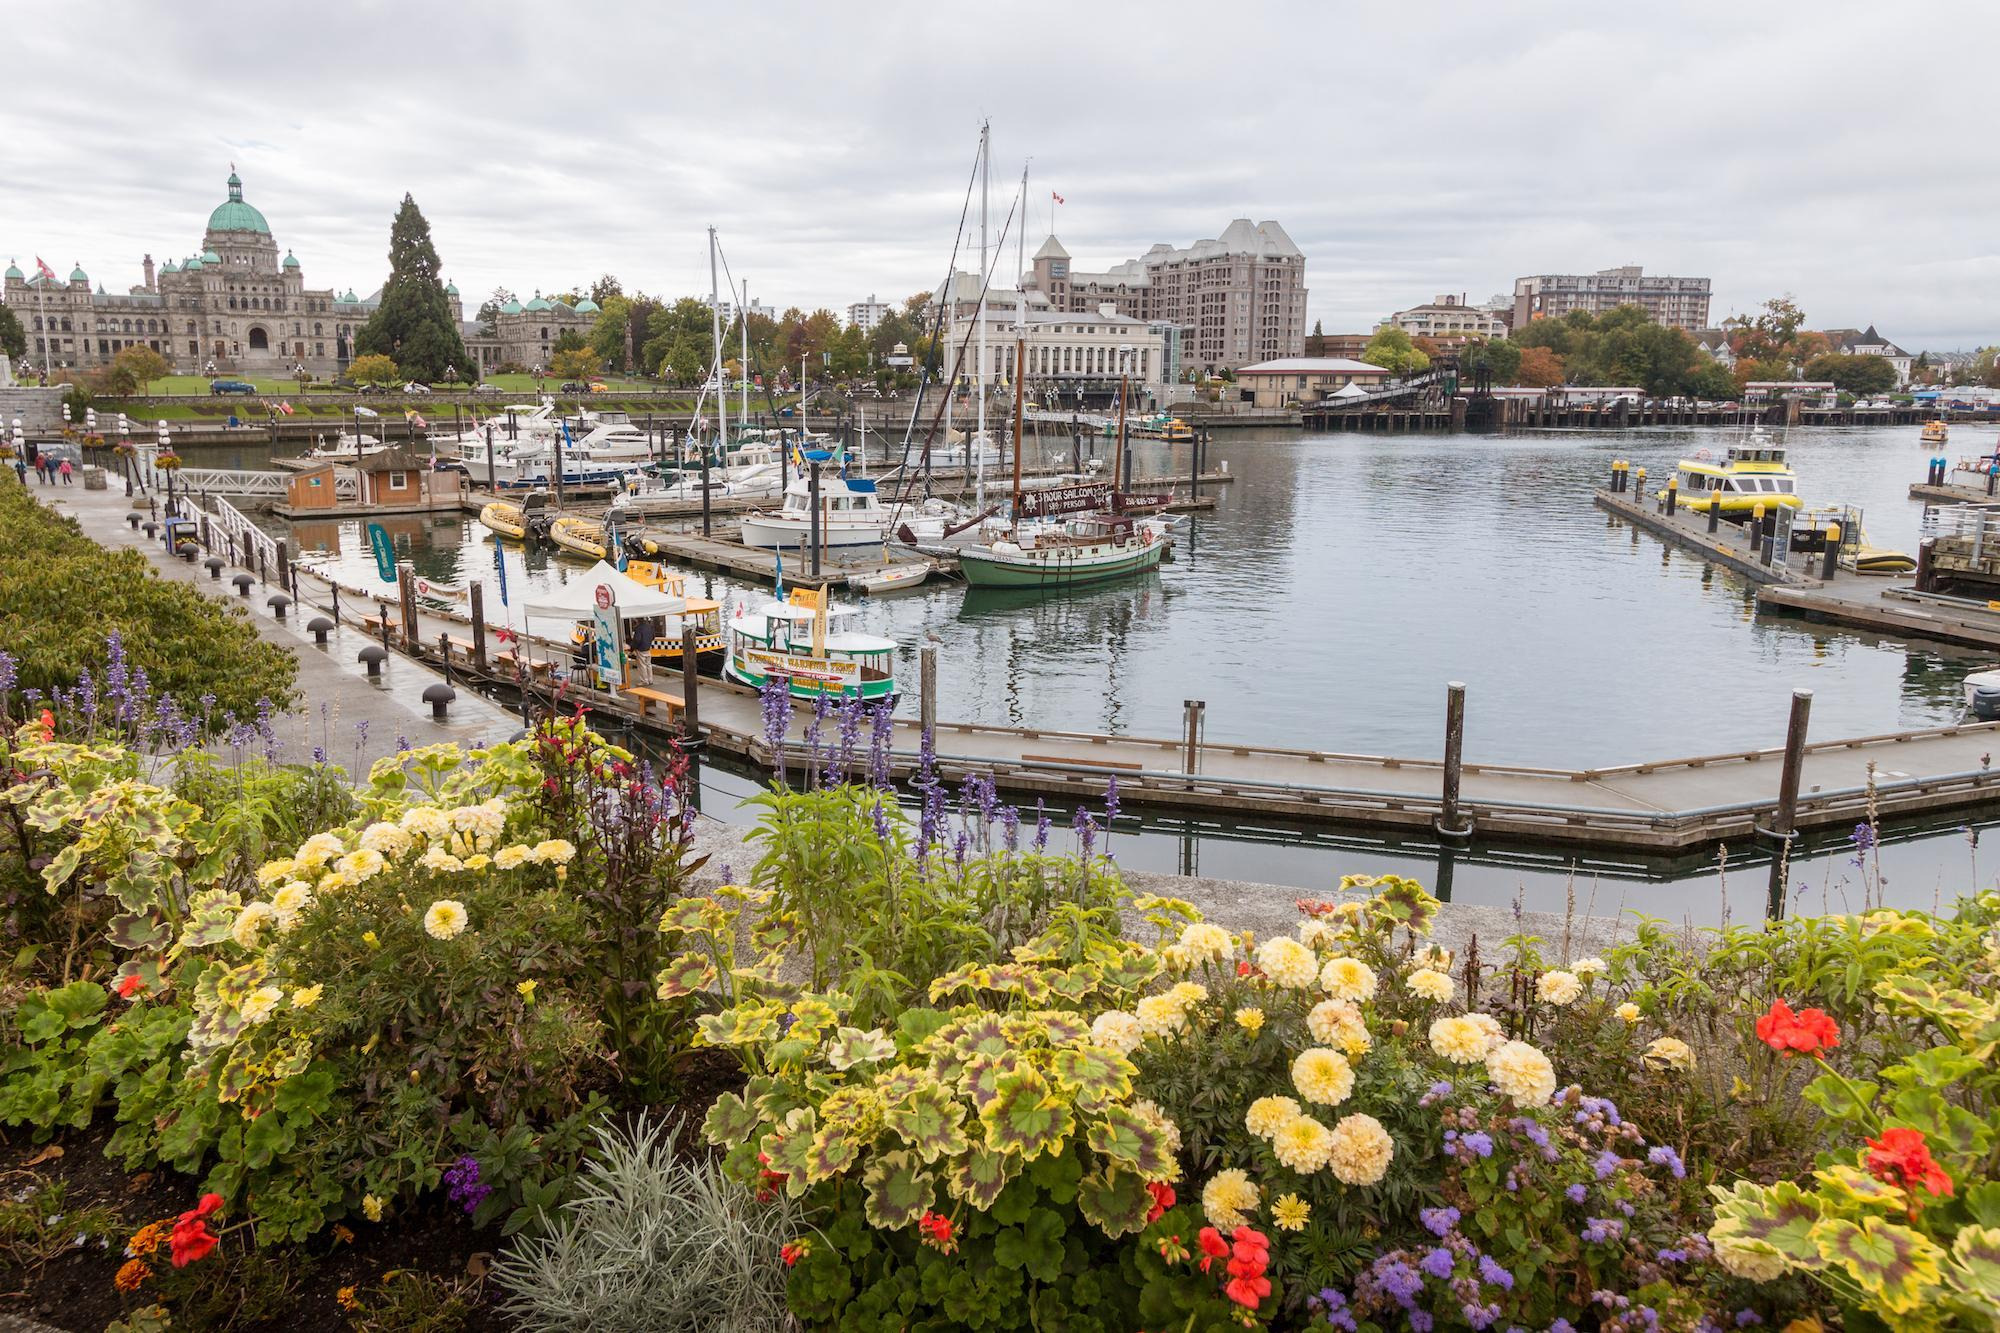 How to Spend 1 Day in Victoria